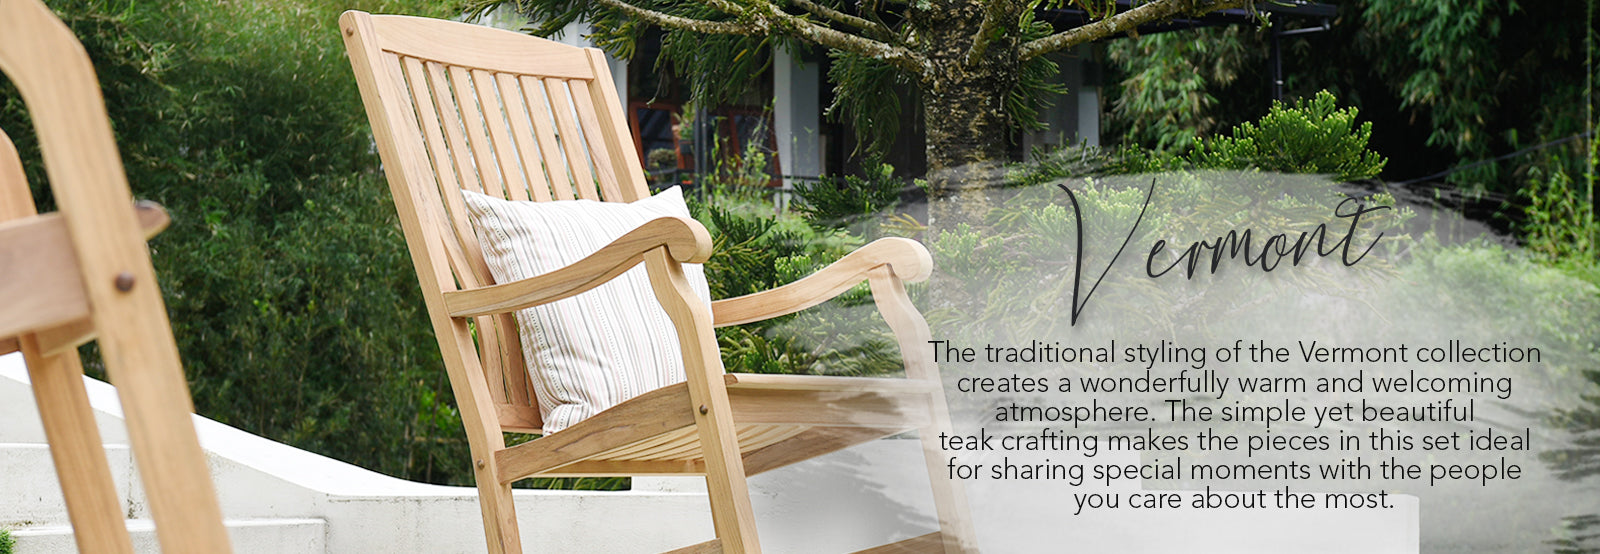 Browse the full Vermont teak furniture collection at Cambridge Casuals. The traditional designs create a welcoming and warm atmosphere.